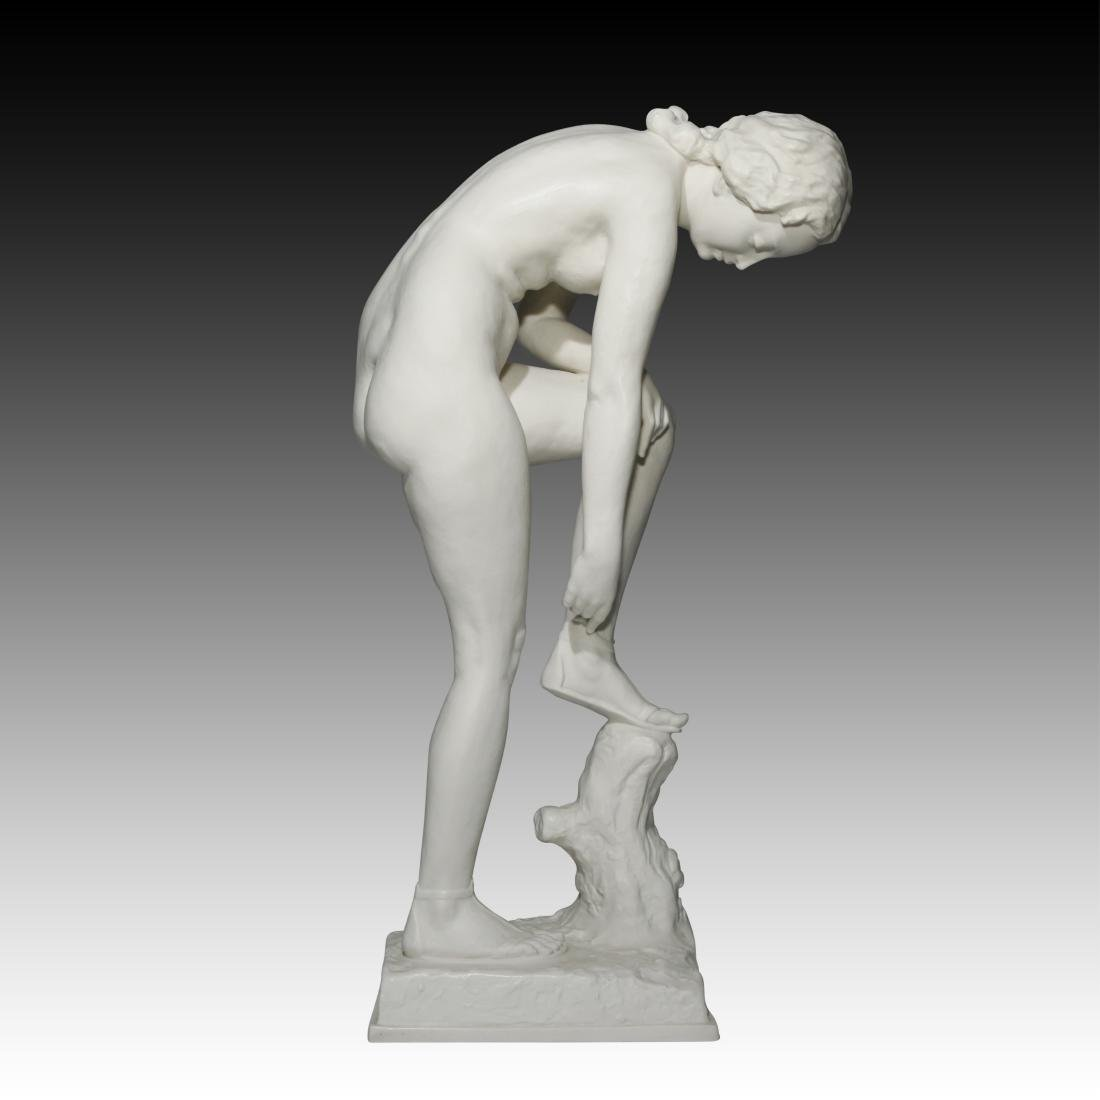 Hutschenreuther Nude Figurine with Bisque Finish